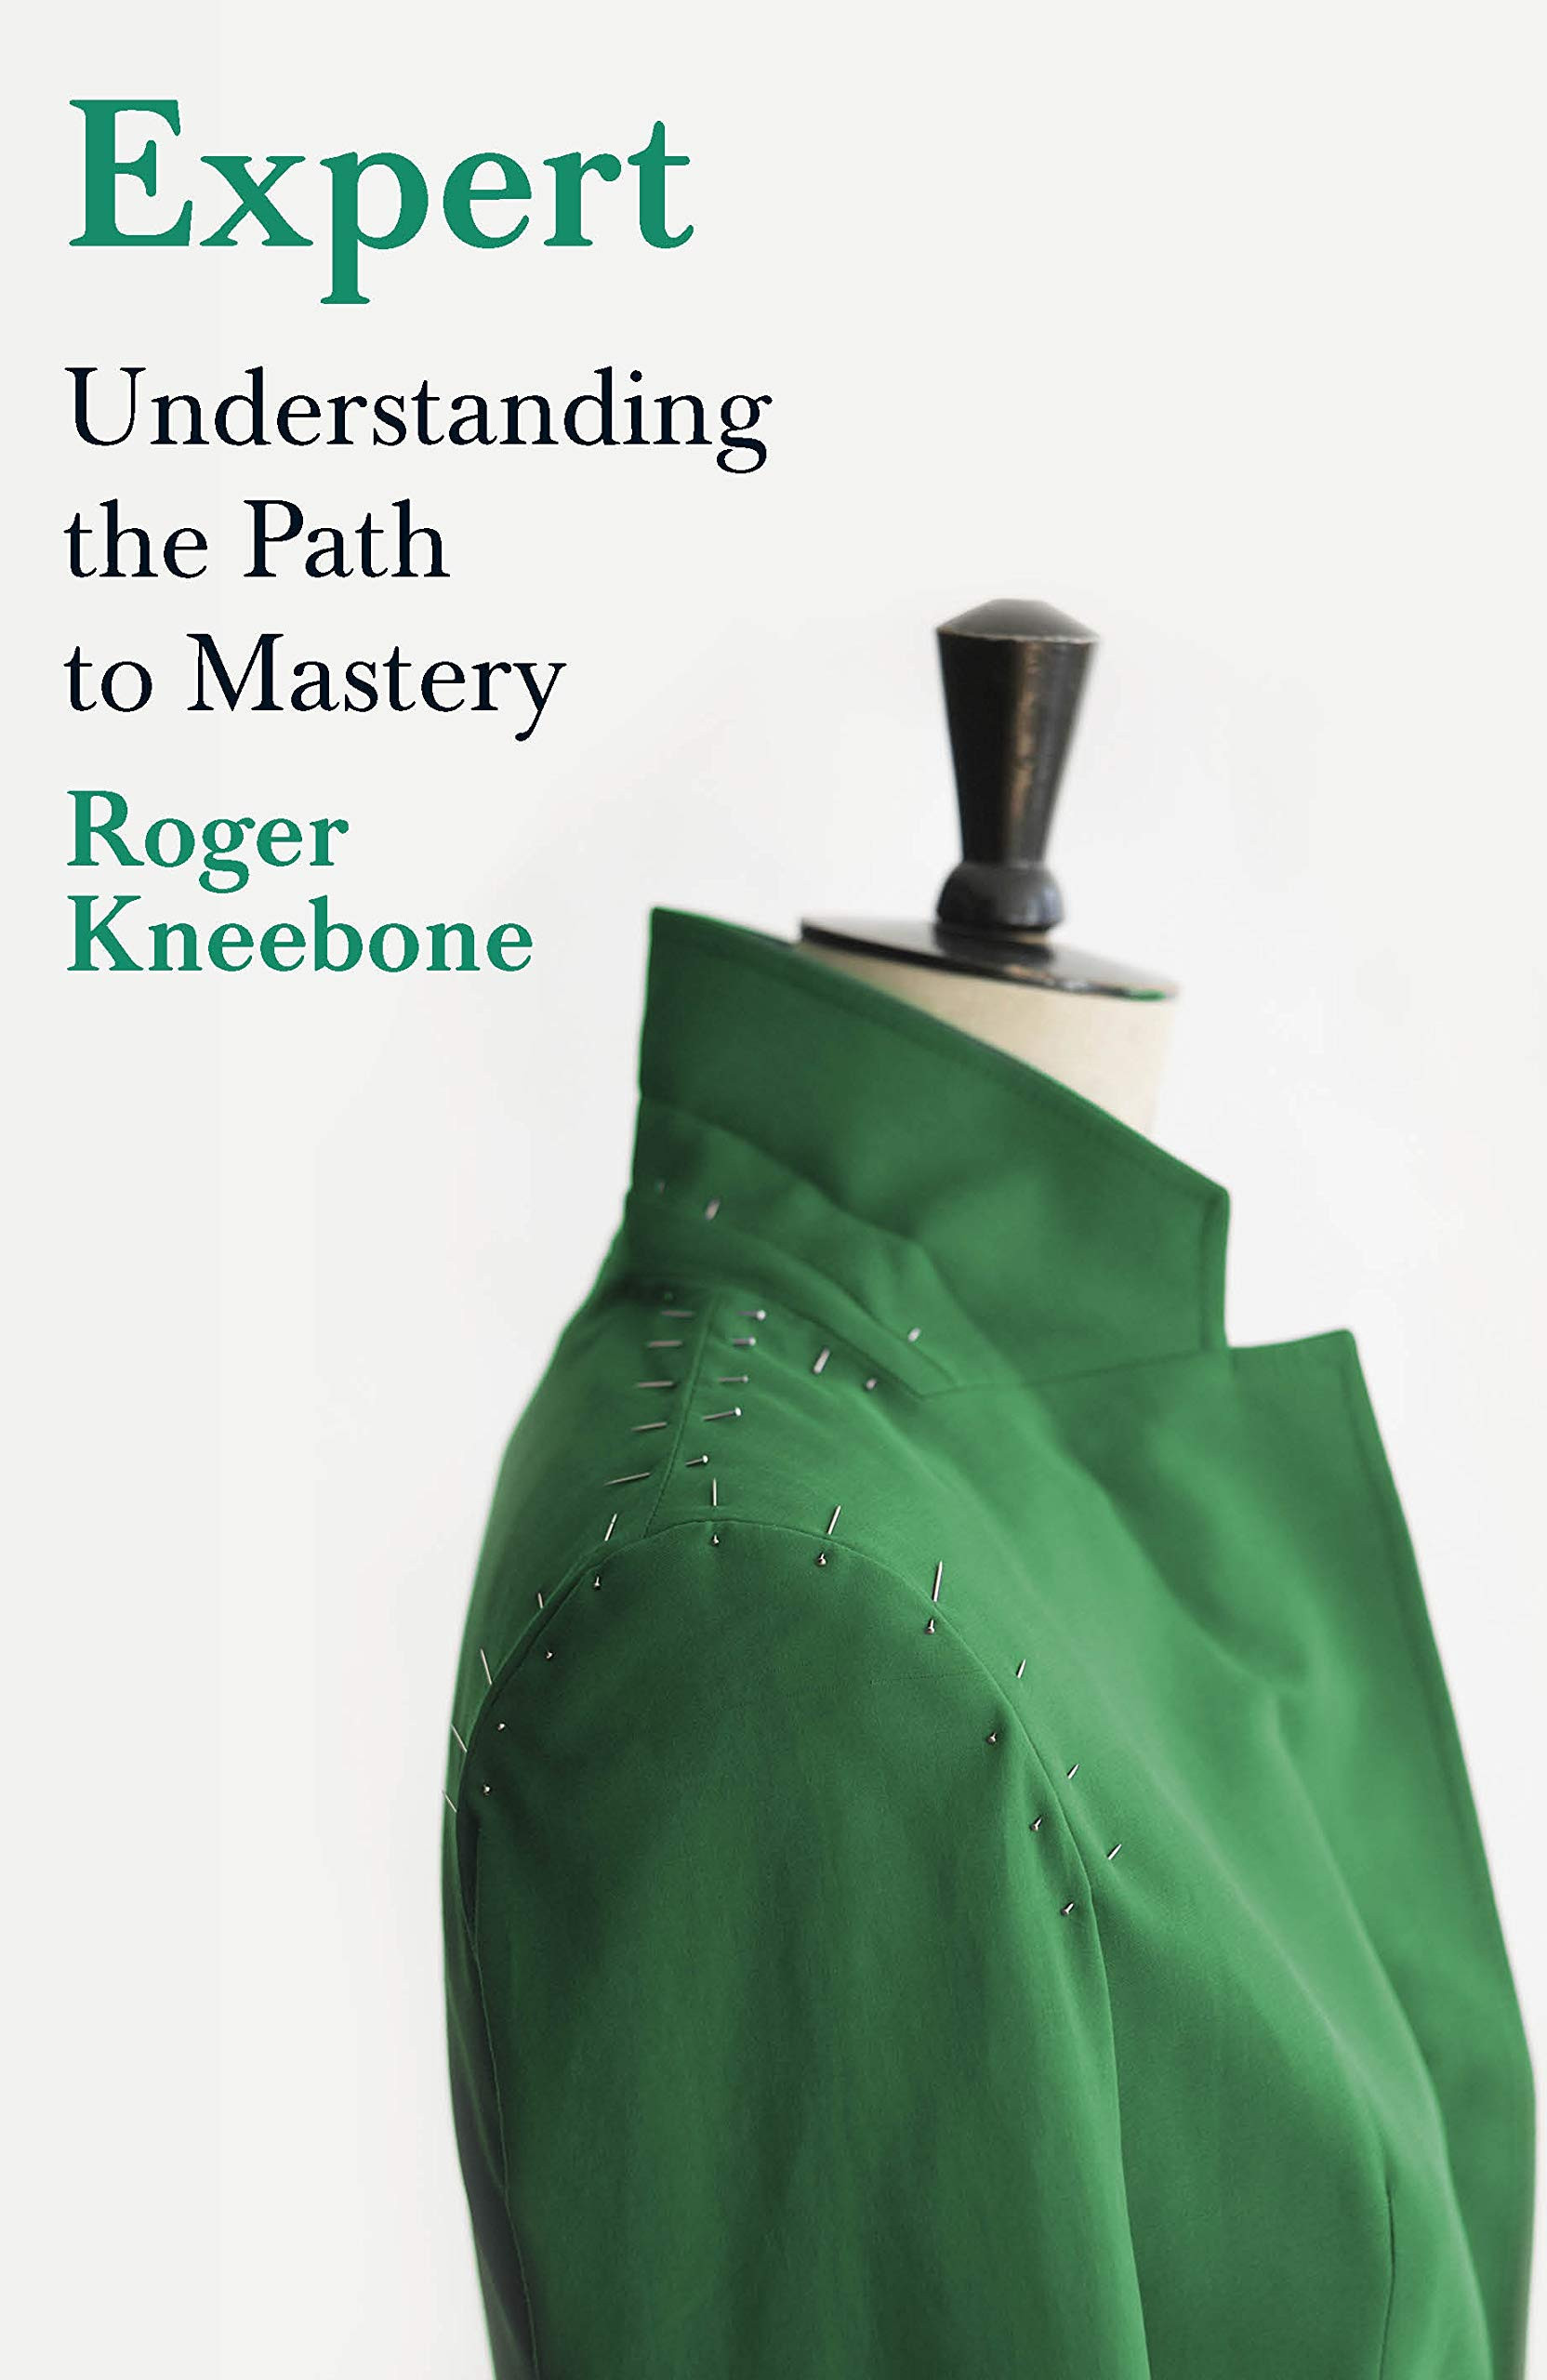 Expert - understanding the path to mastery